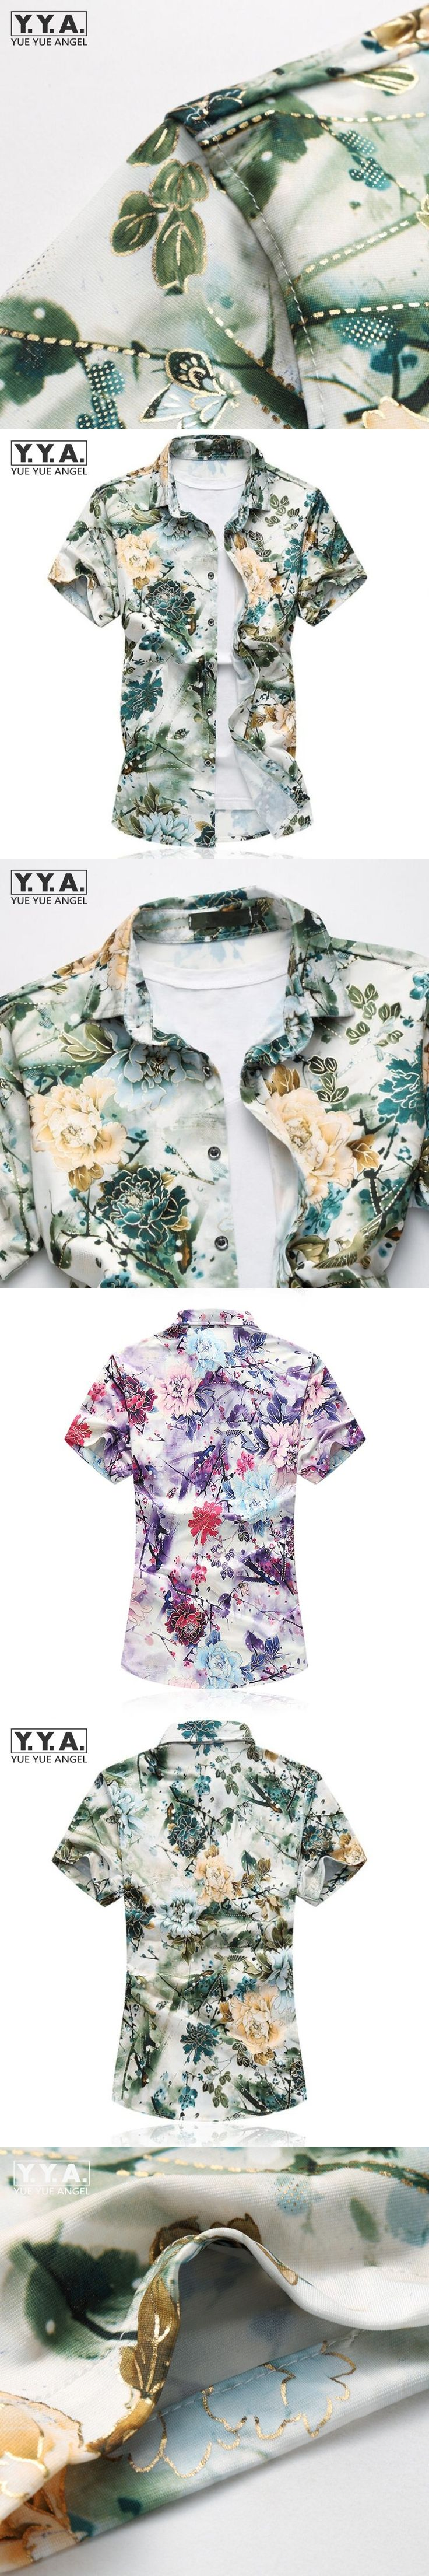 Summer Hawaiian Silk Cotton Short Shirts For Men Plus Size M-7XL Slim Fit Floral Printed Mens Tops Breathable Comfortable Shirts